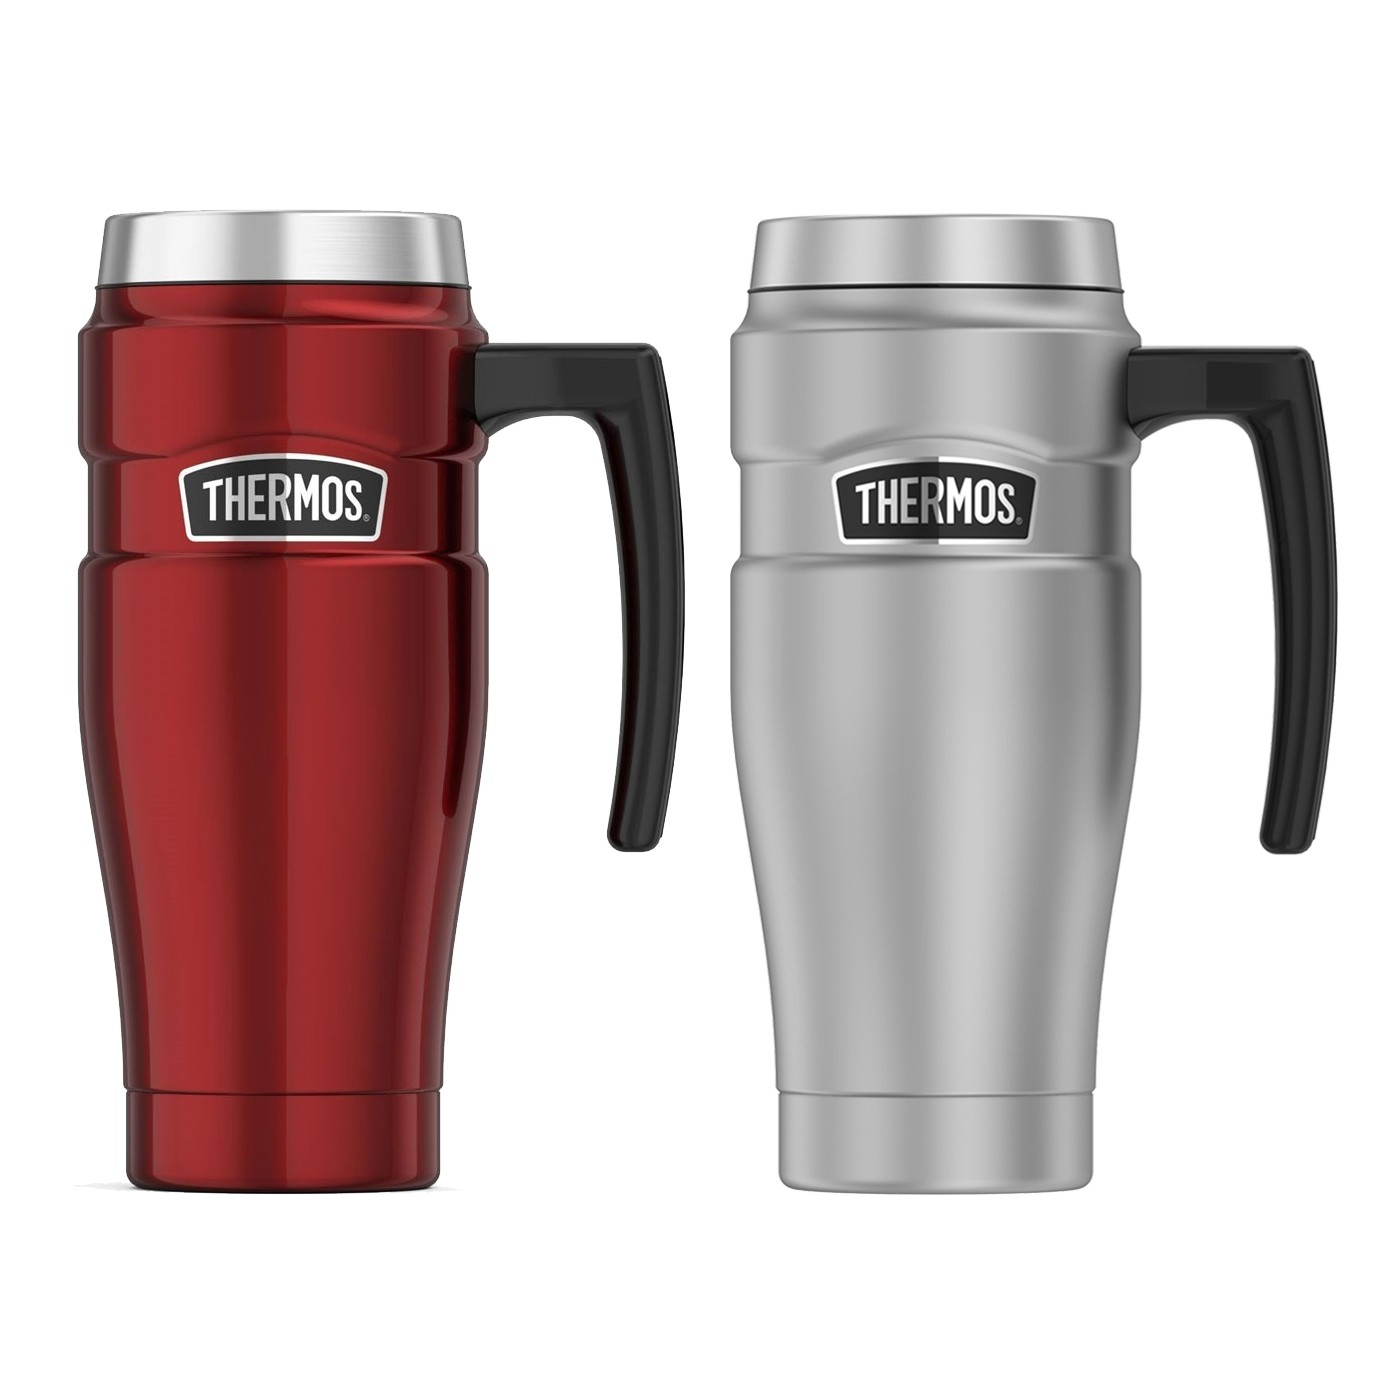 STAINLESS KING VACUUM INSULATED STAINLESS STEEL TRAVEL MUG 16OZ PAIR